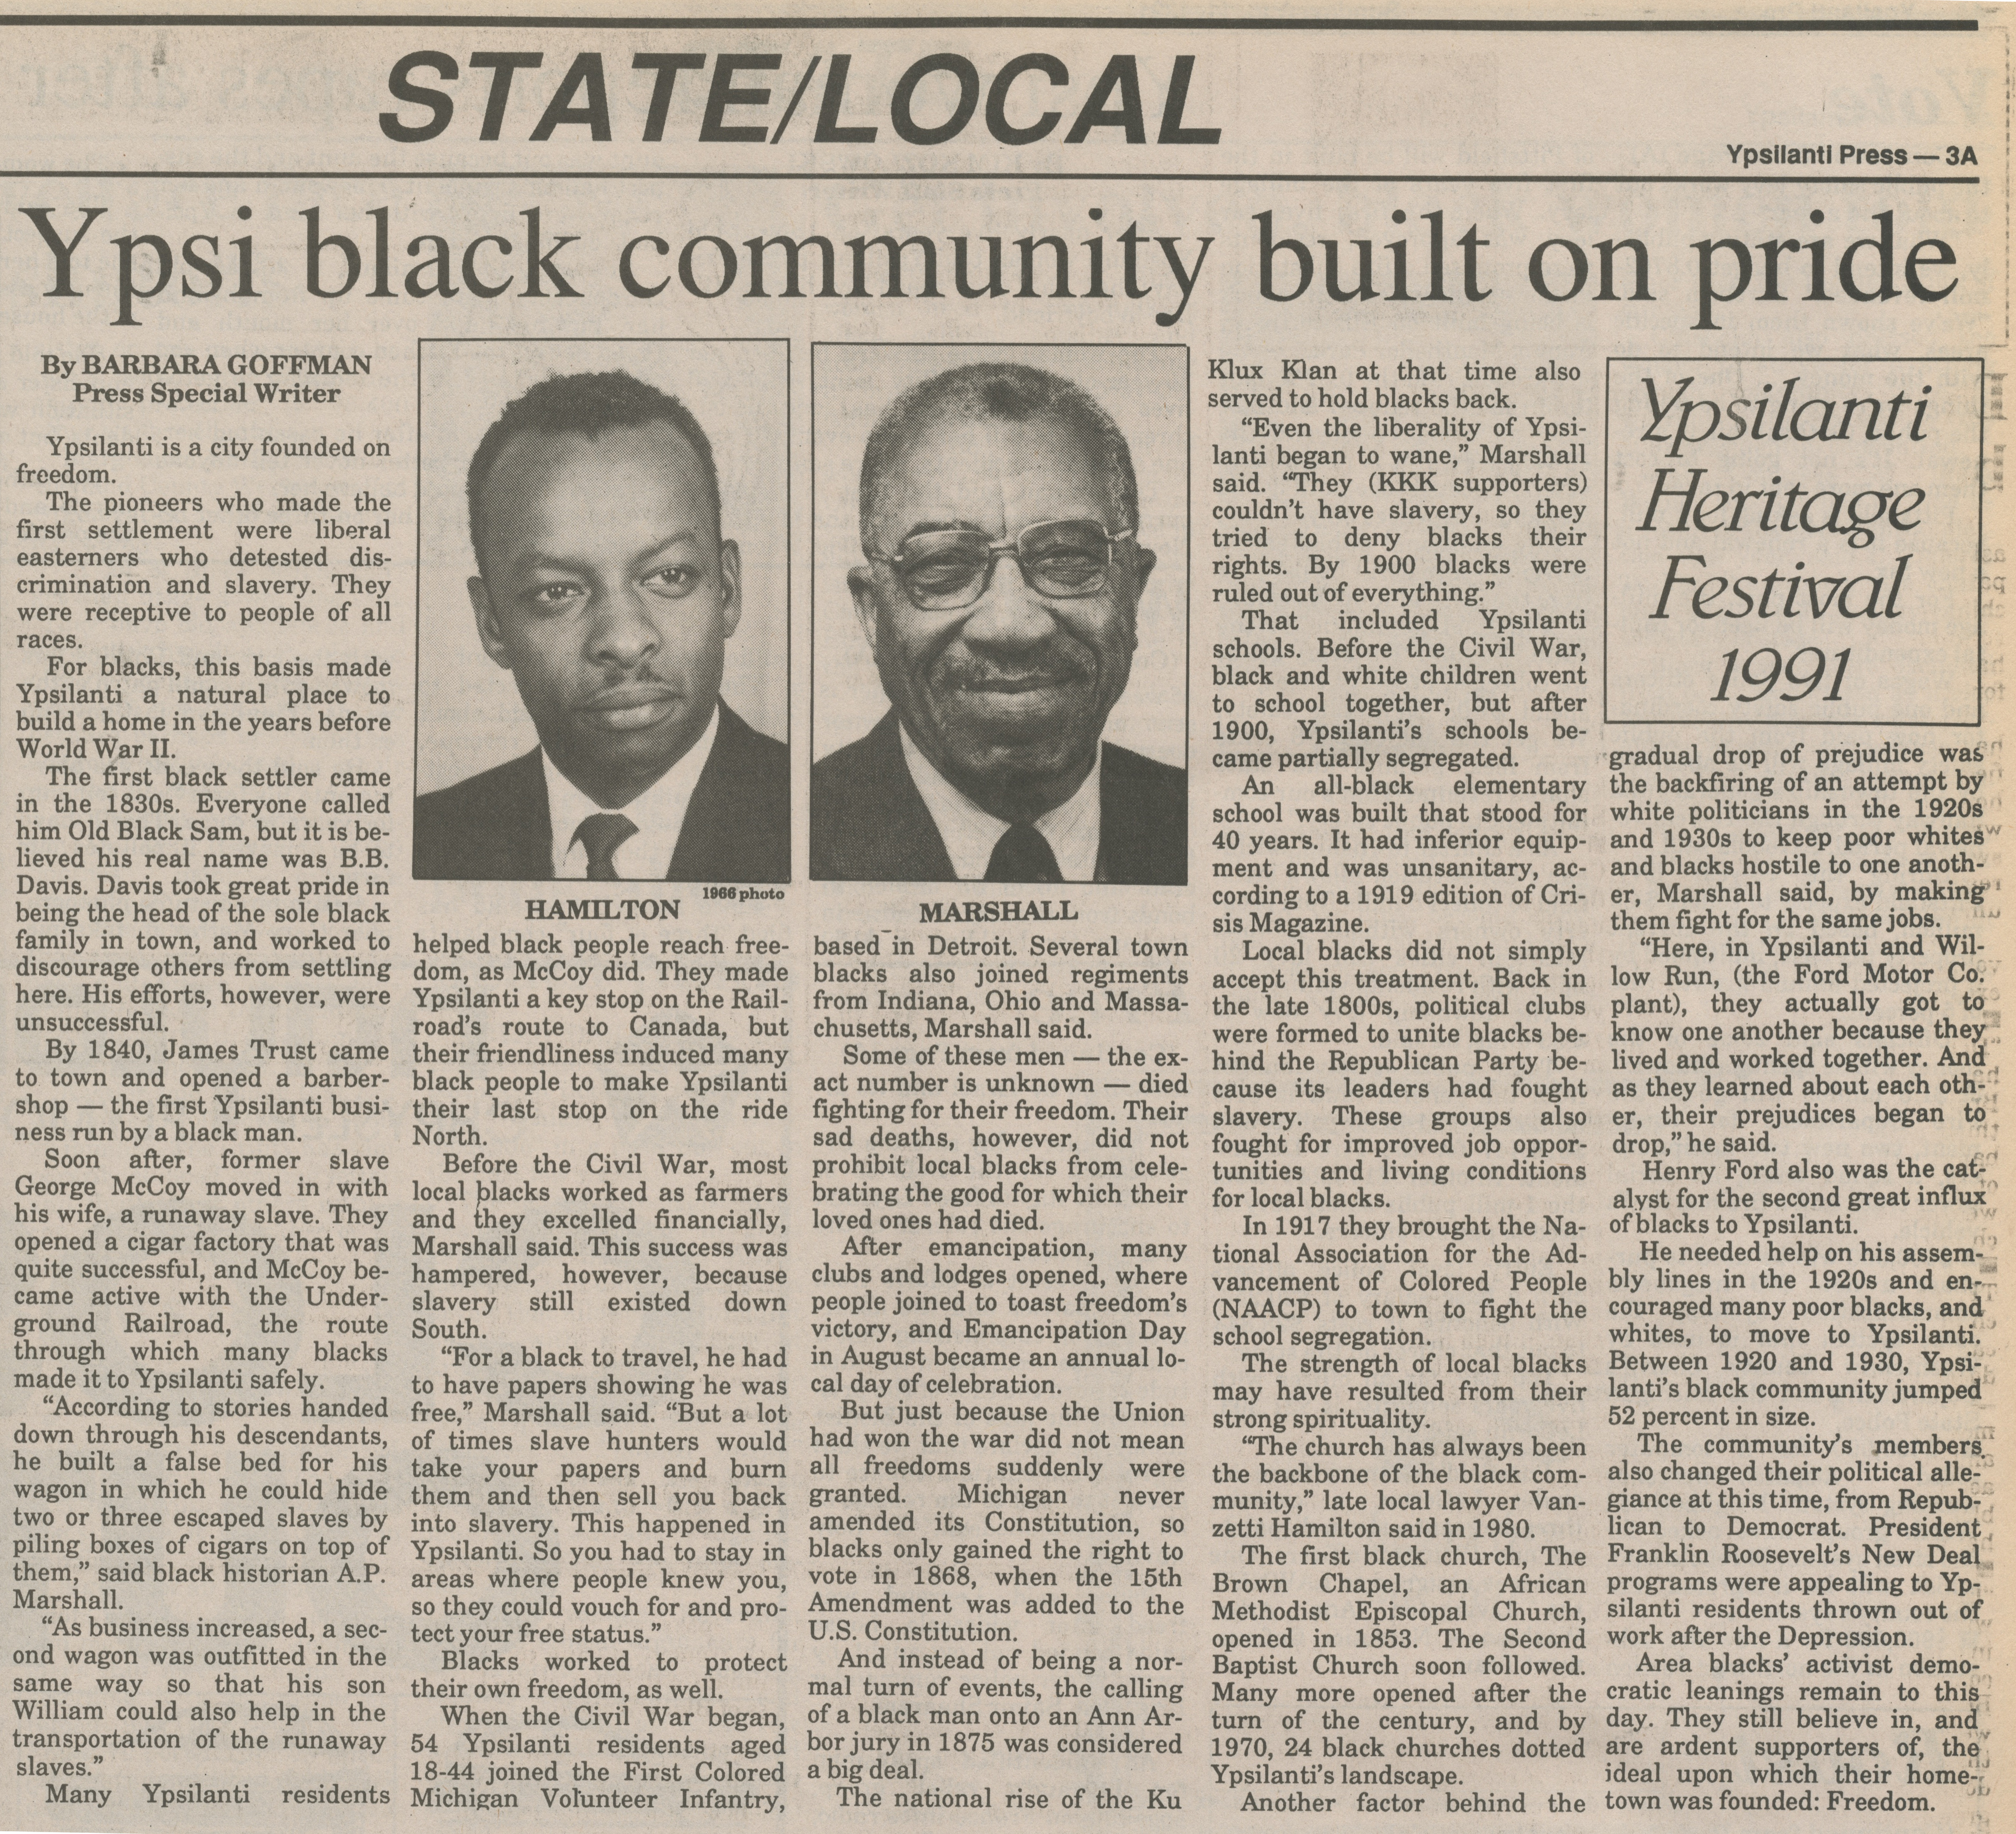 Ypsi Black Community Built On Pride image